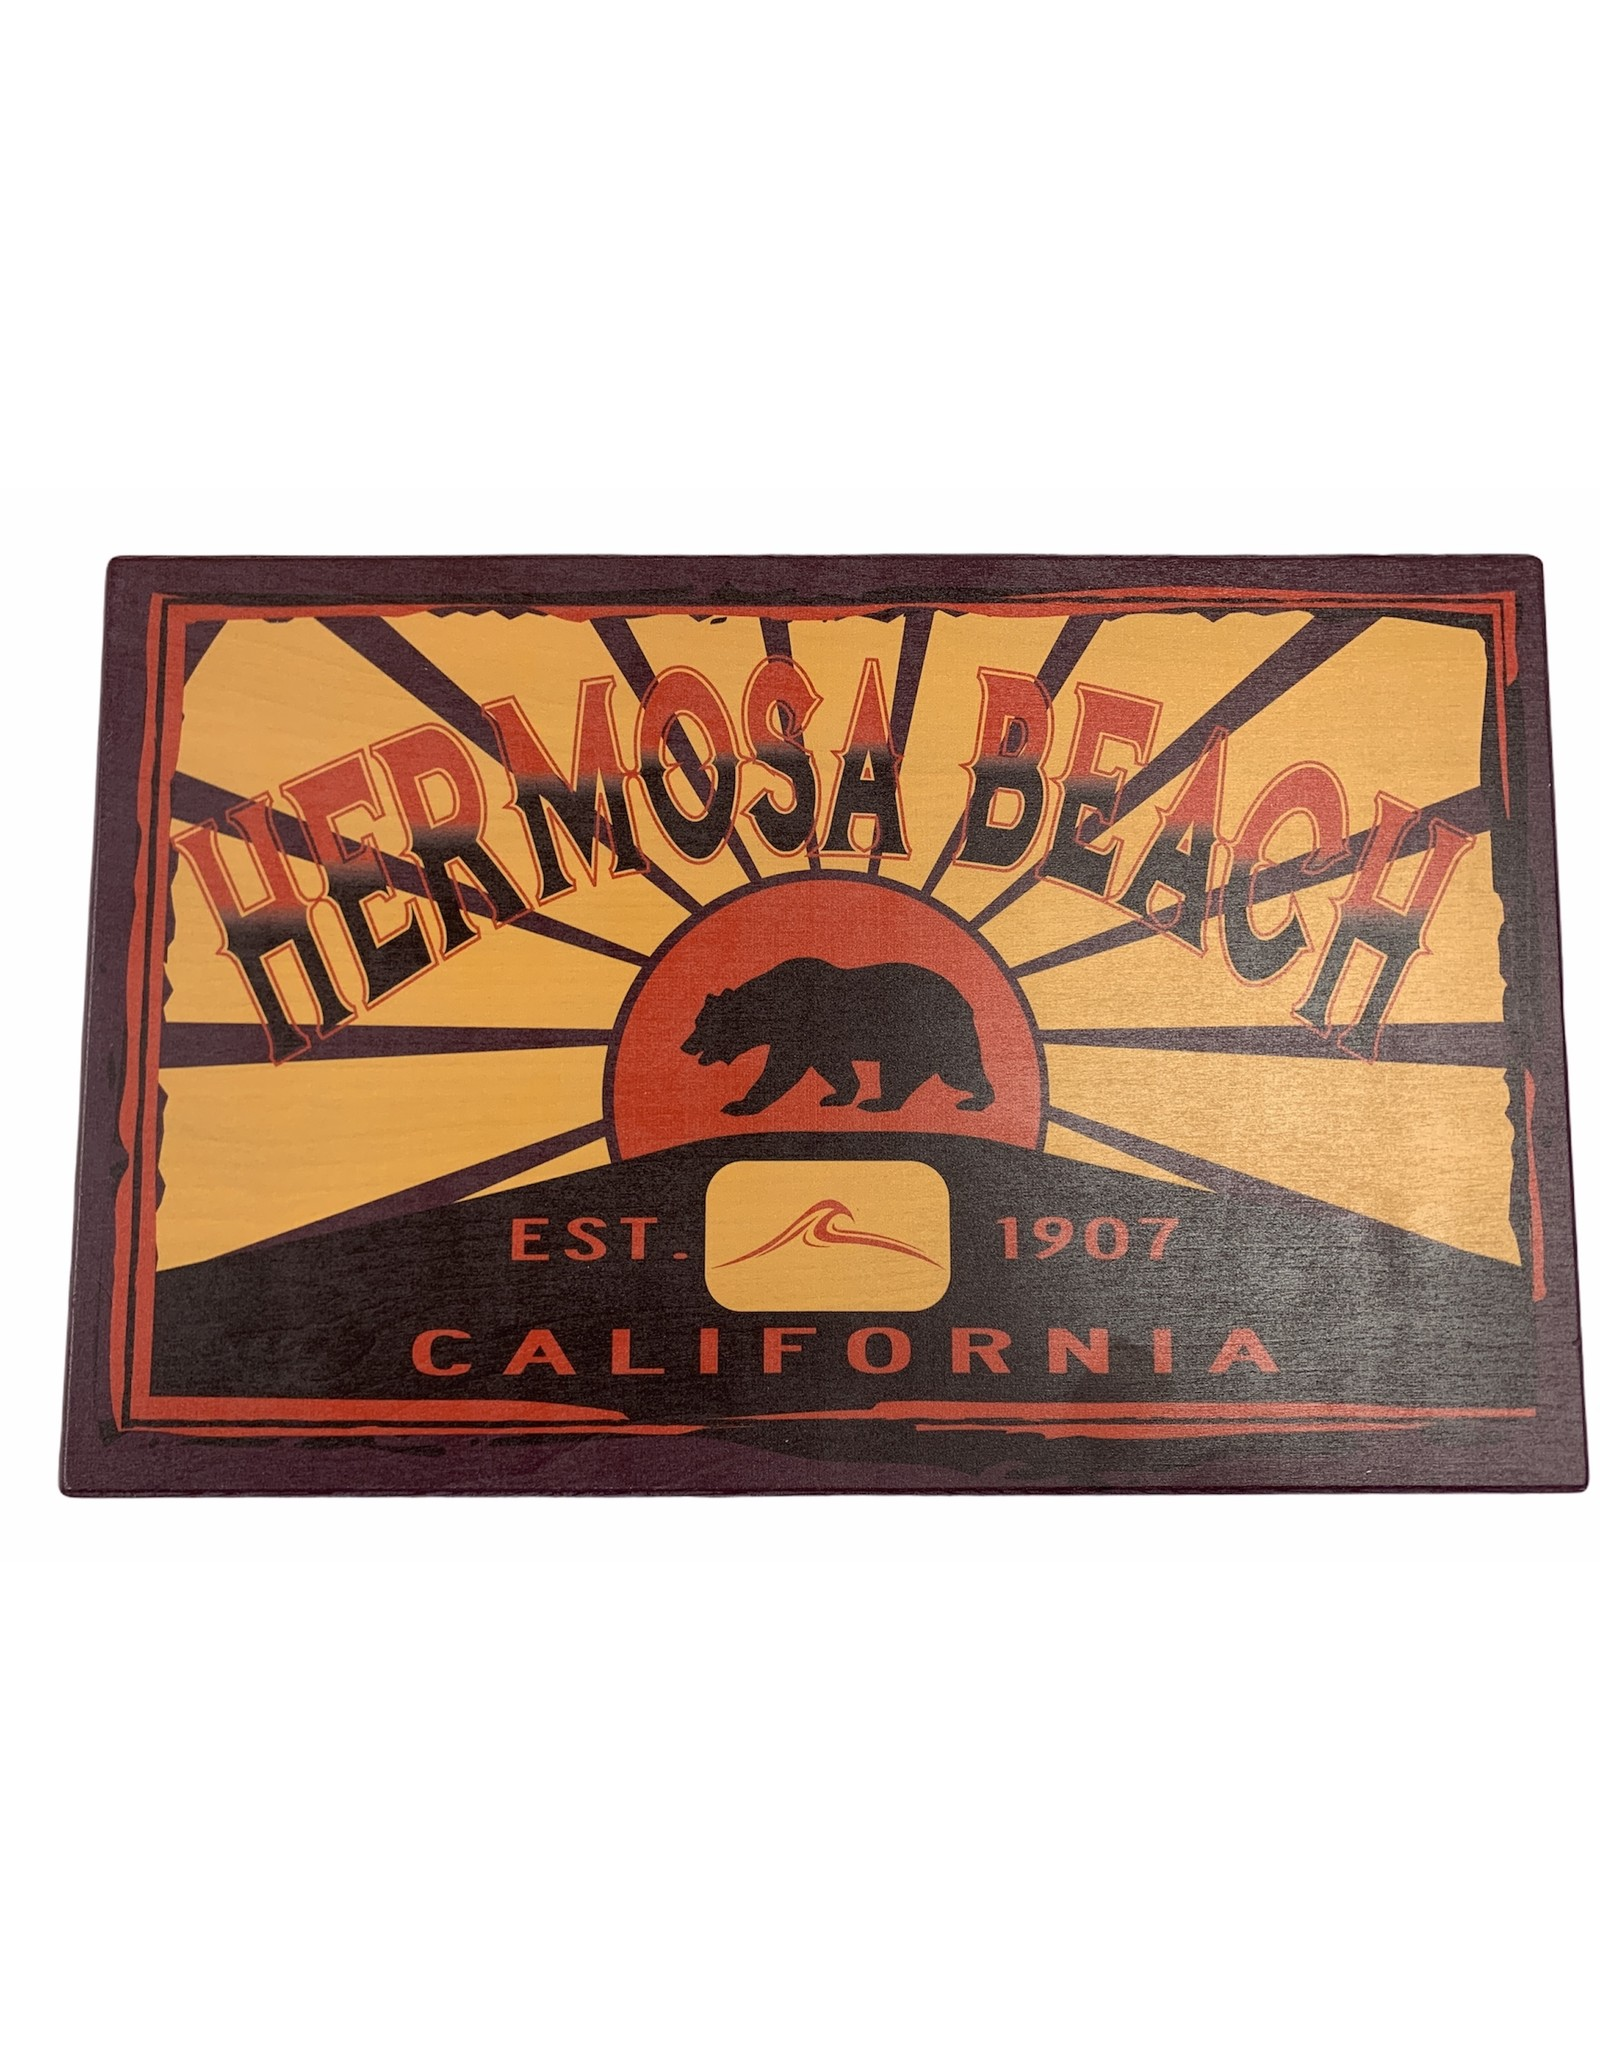 "Lakeshirts INC. HB CALI BEAR/WAVE WOOD SIGN 11.5""X18""https://treasure-chest-hermosa-beach.shoplightspeed.com/admin/products/paginate?dir=next&offset=11&product_id=37072070"